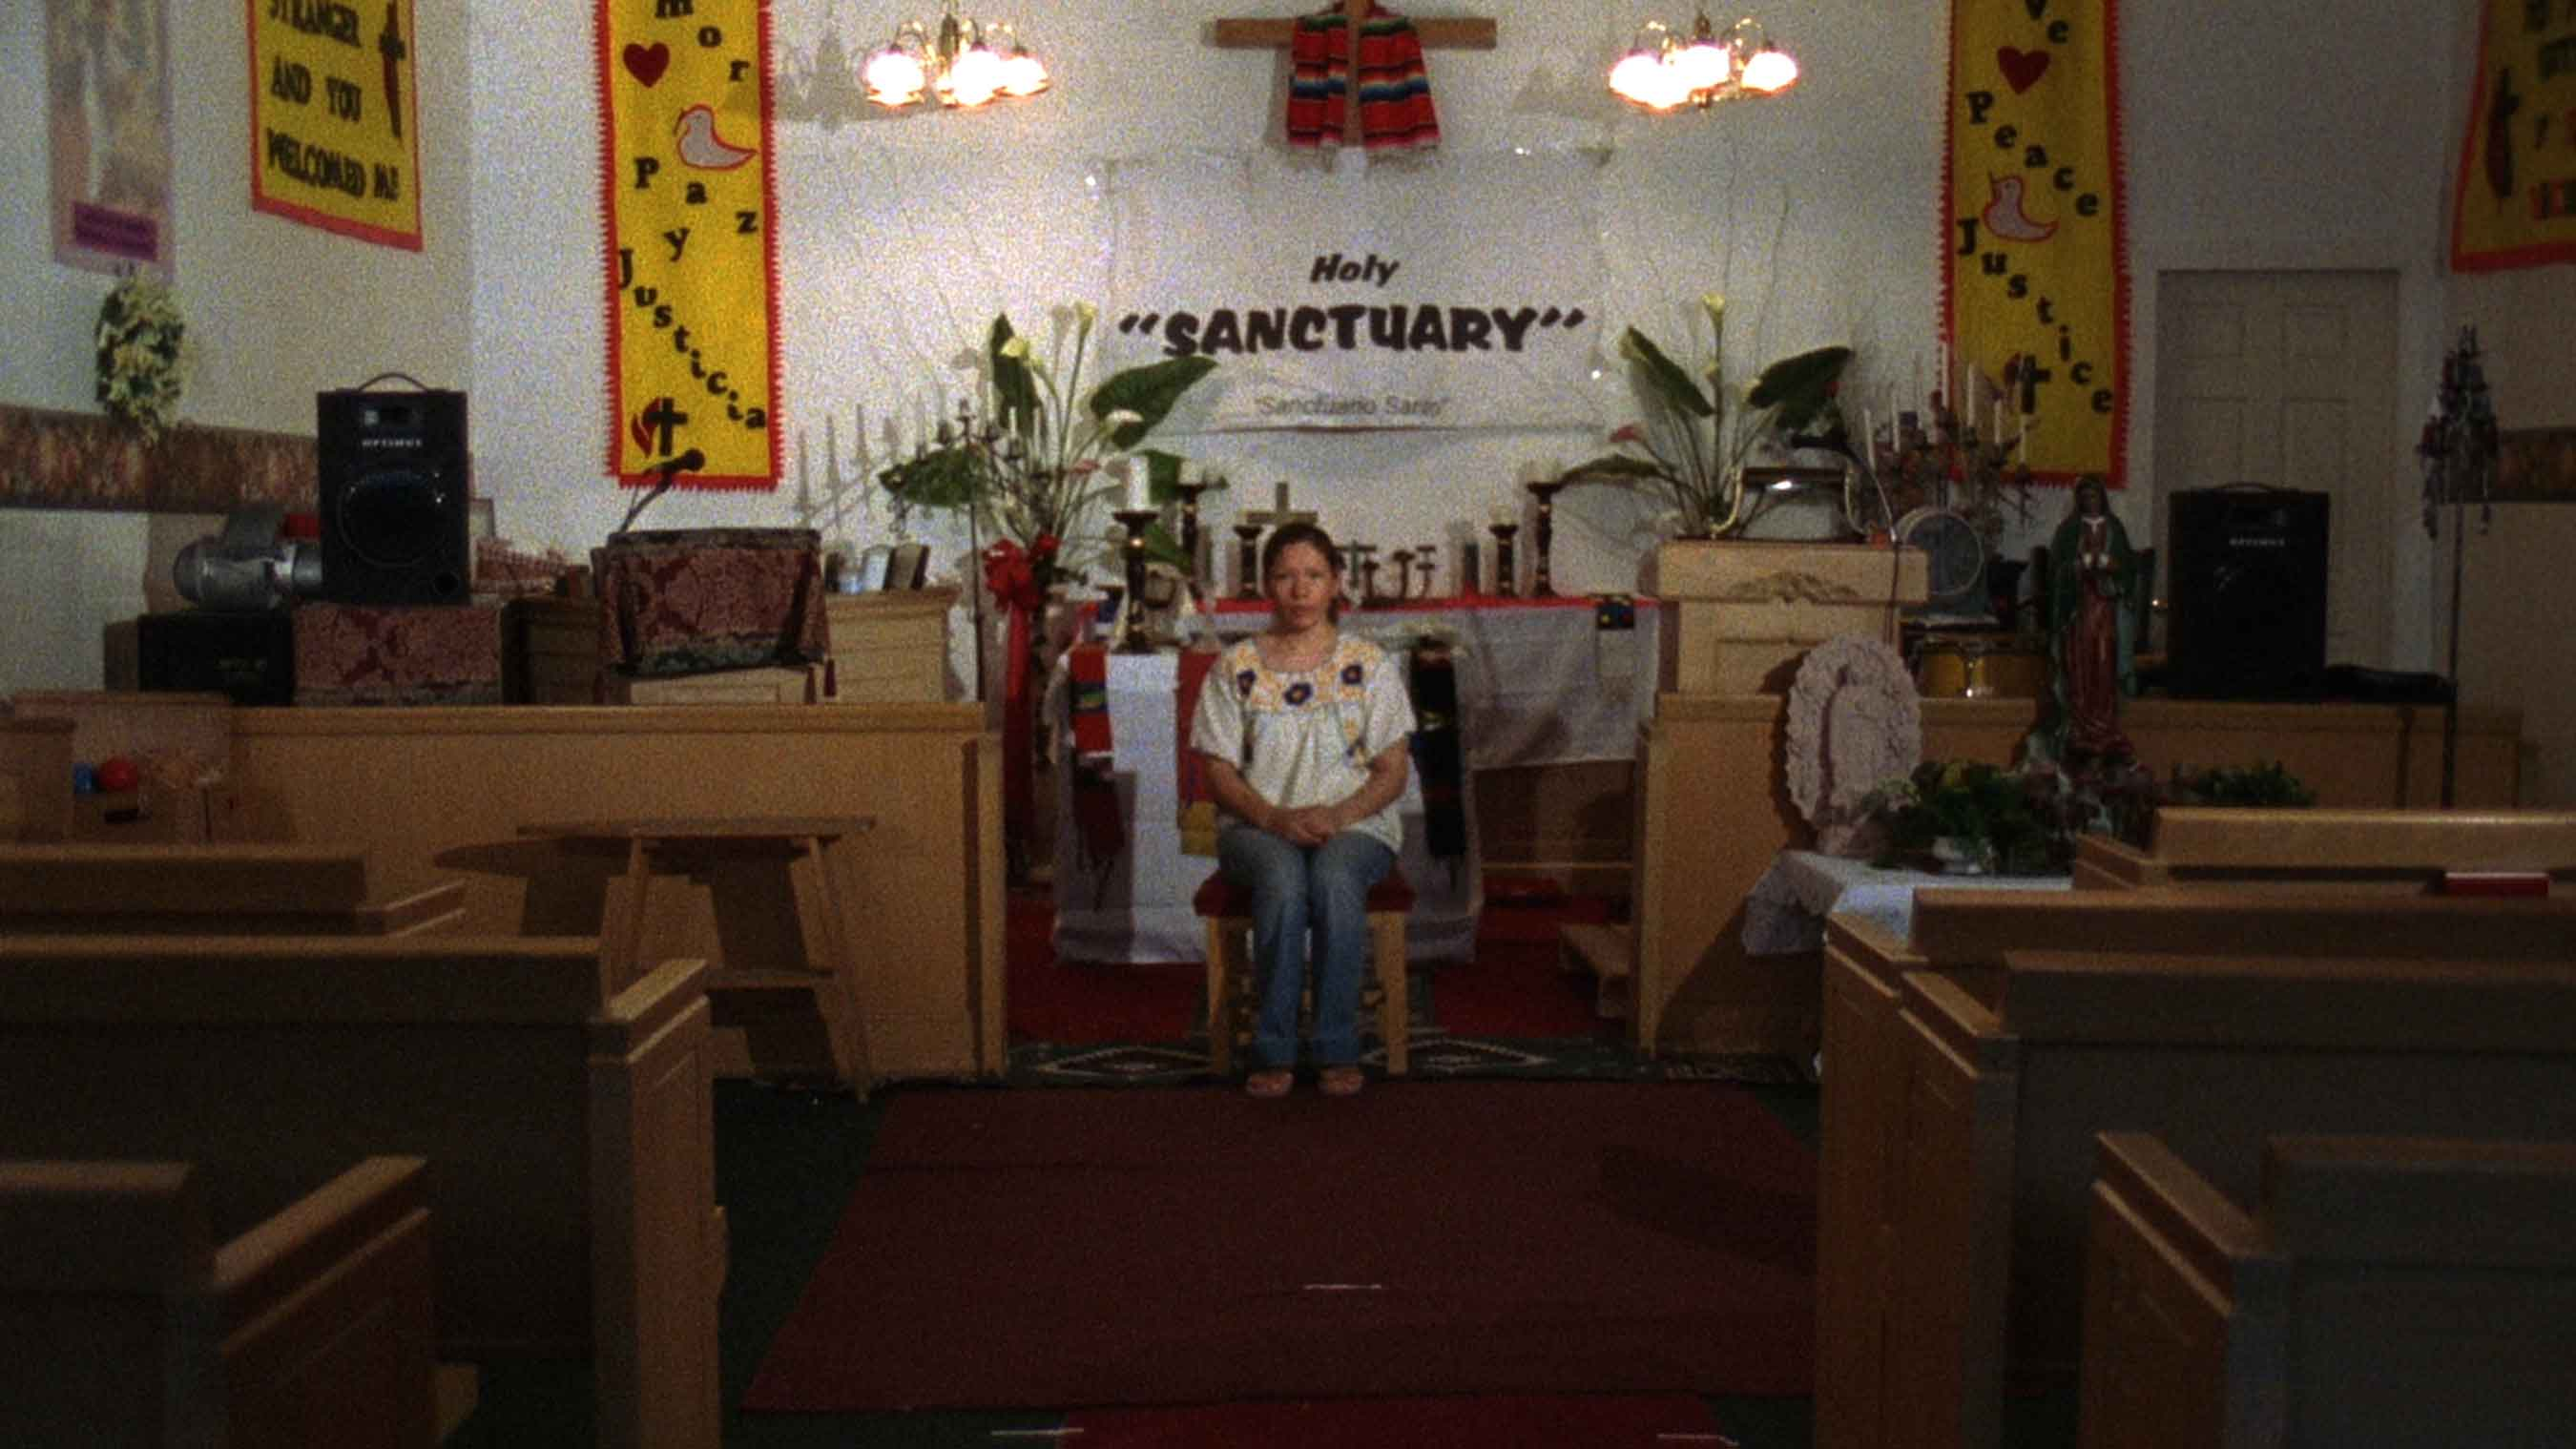 Sanctuary, 2007, film still, 16 mm film transferred to HD video, (color, silent, 6:43 min. looped), DV media player, HD projector, CF card. Editor Fil Rüting.